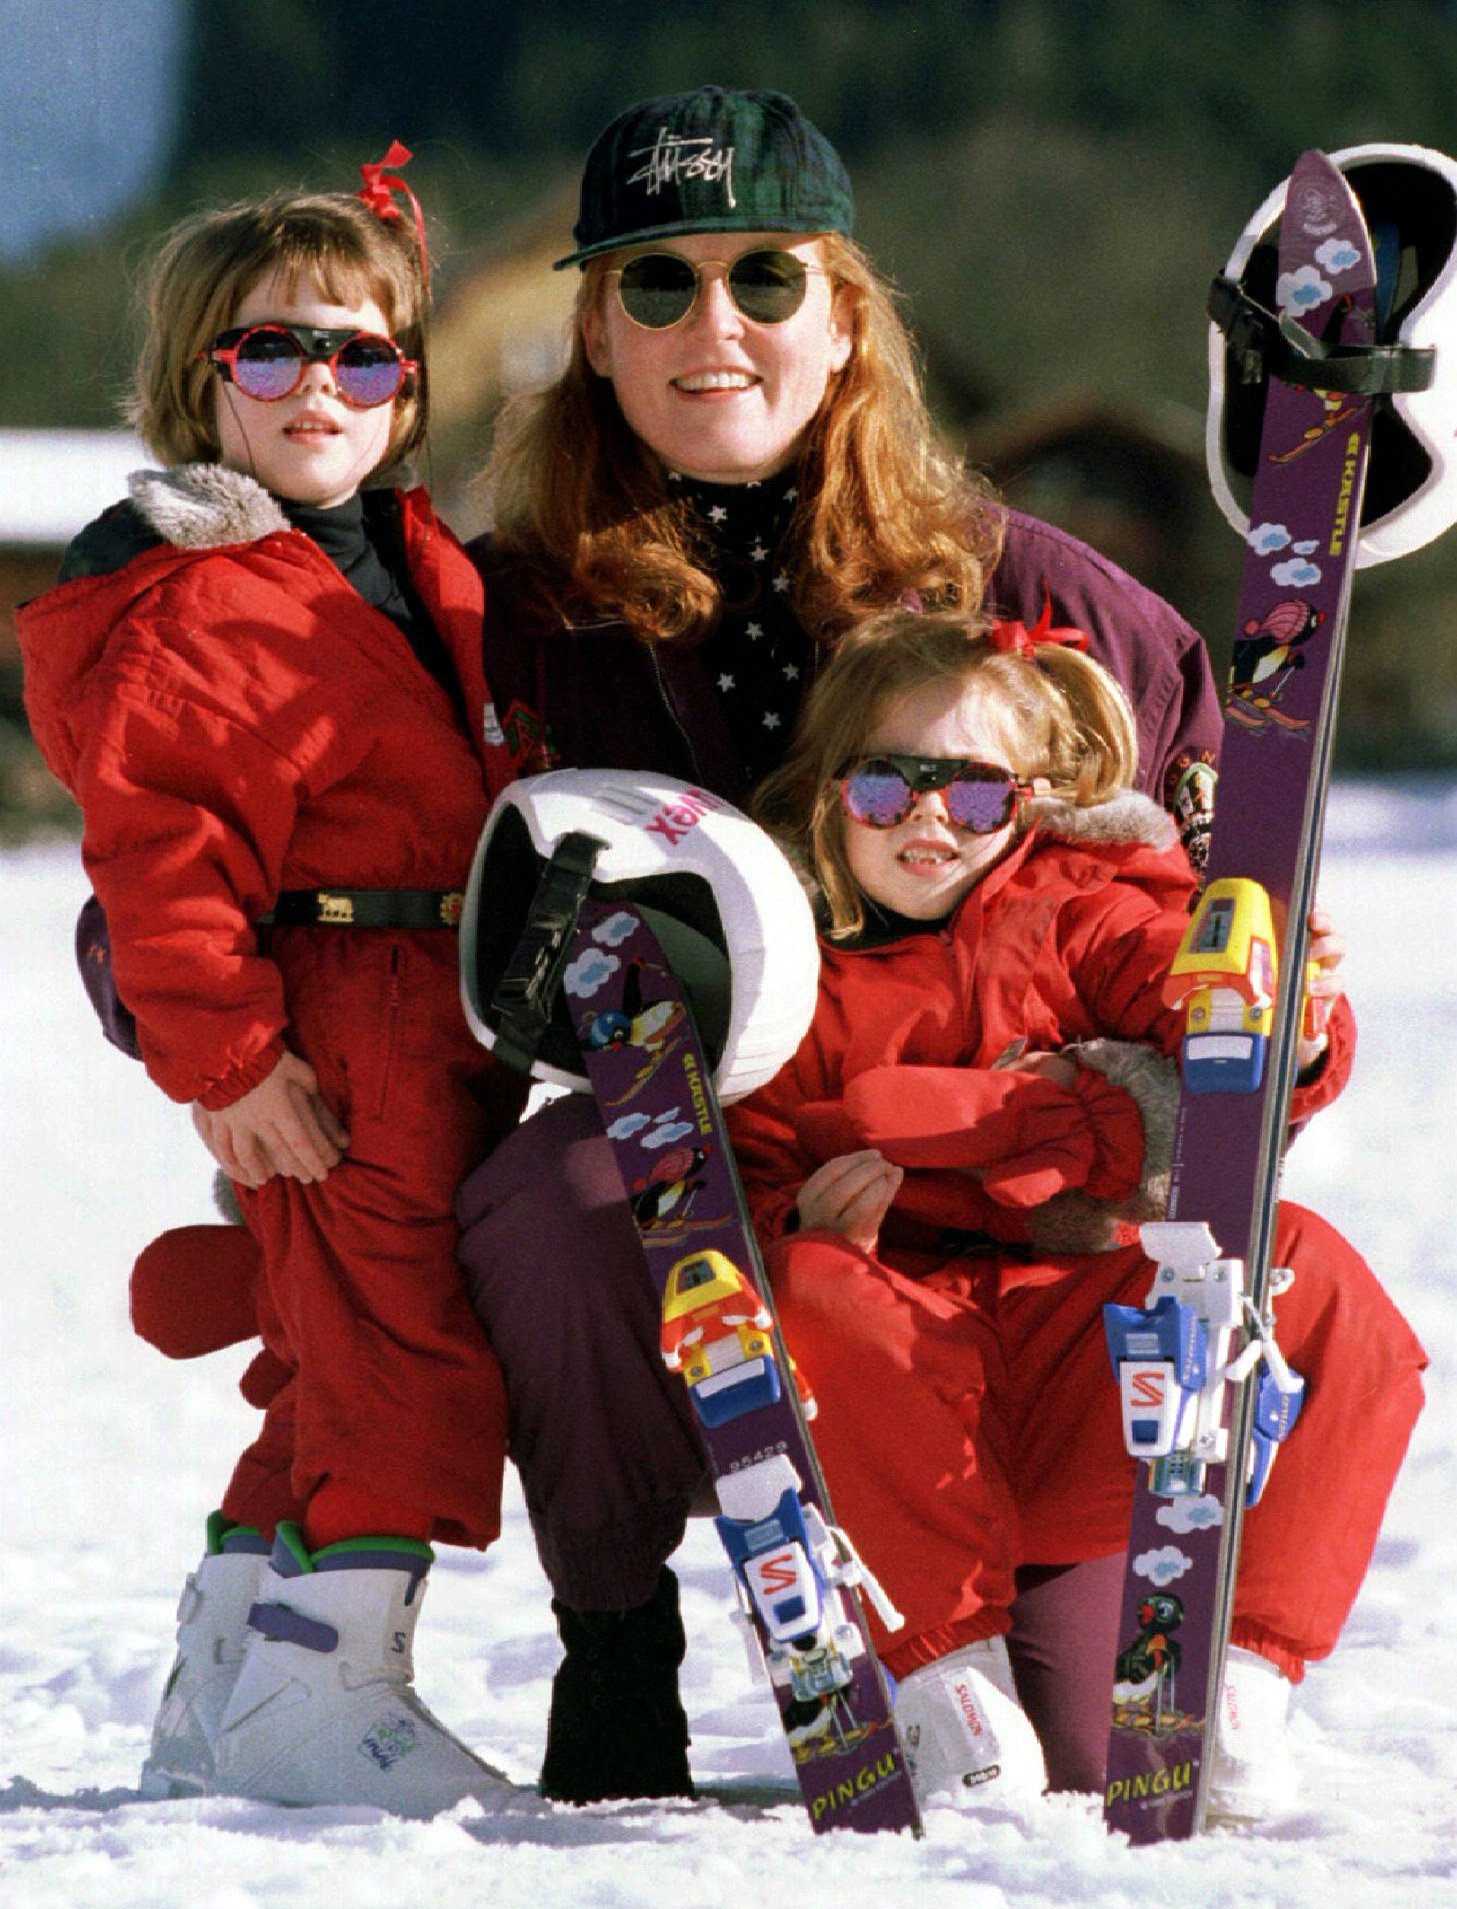 Princesses Eugenie (R) and Beatrice pose for photographers with their mother the Duchess of York Sarah Ferguson in Klosters Dec 29 - PBEAHUNIUEH